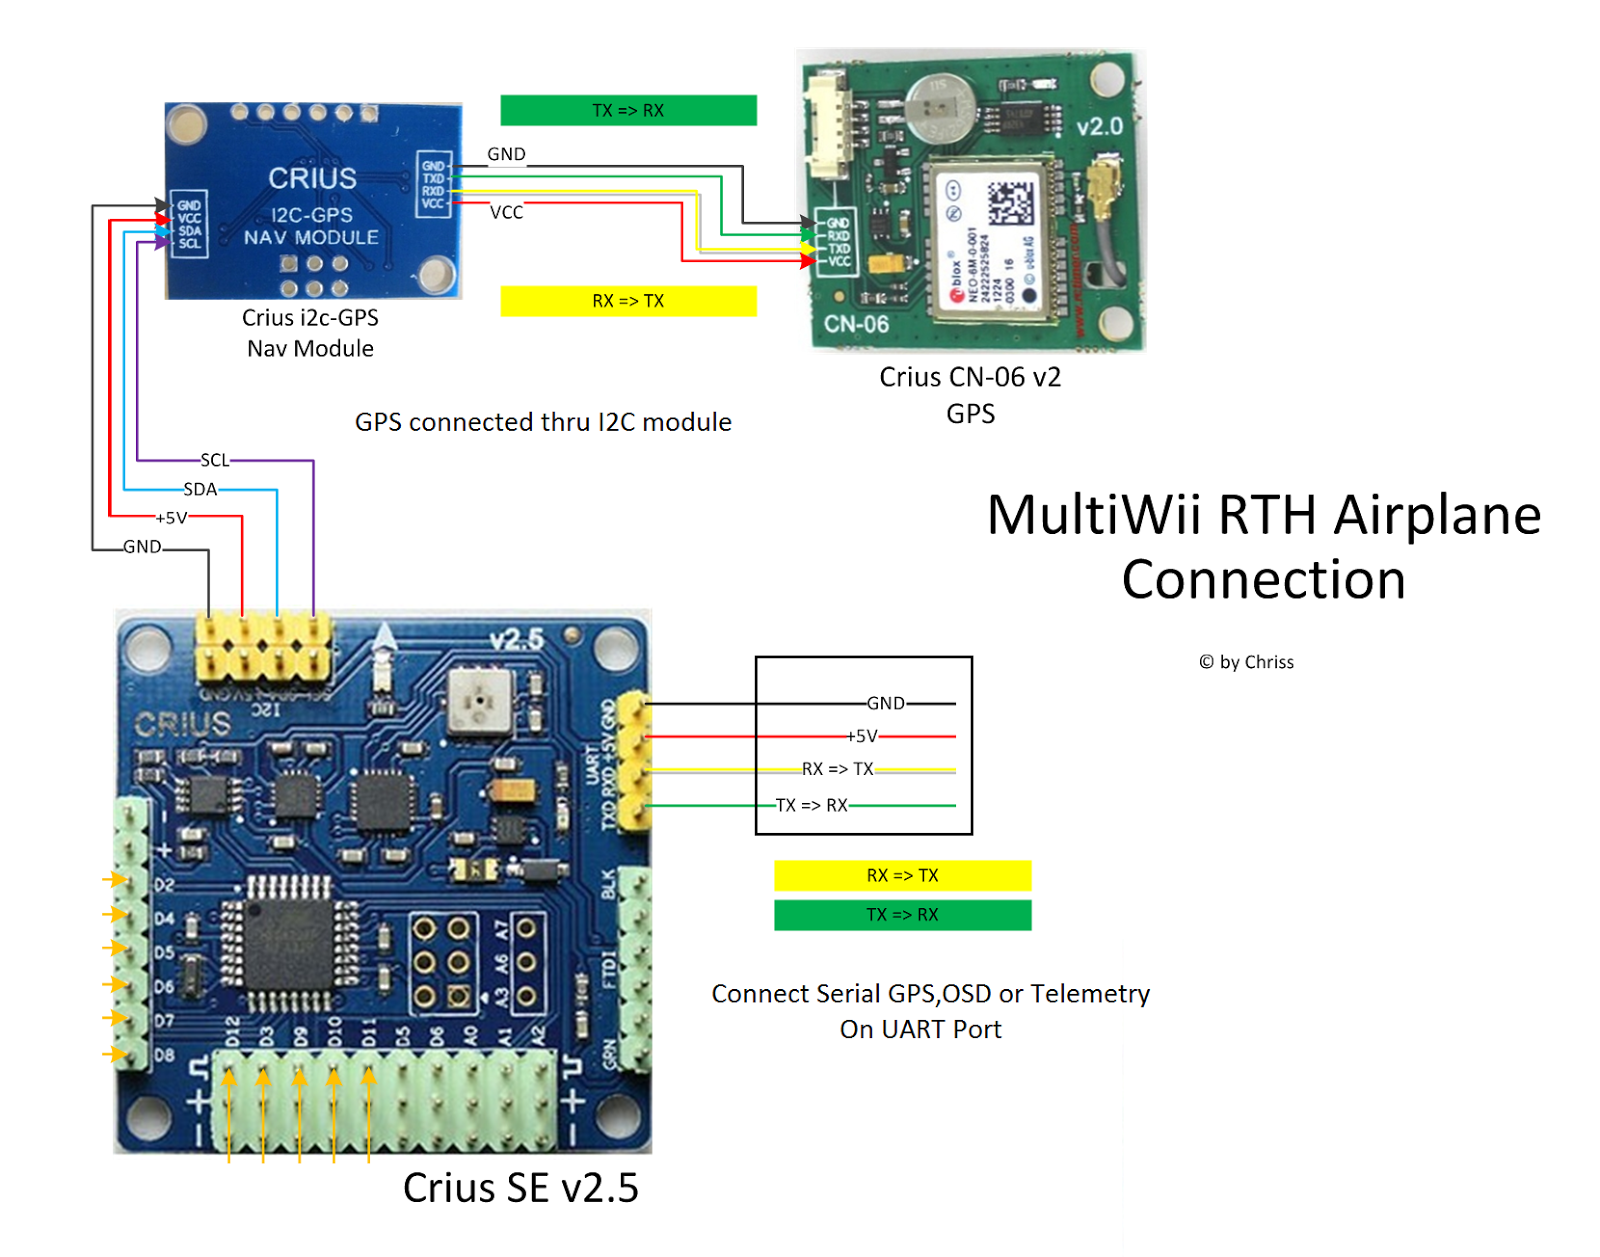 Multiwii Flight Controller Wiring Diagram - Subaru Justy Radio Wiring  Diagram - diagramford.losdol2.jeanjaures37.fr | Multiwii Wiring Diagram |  | Wiring Diagram Resource